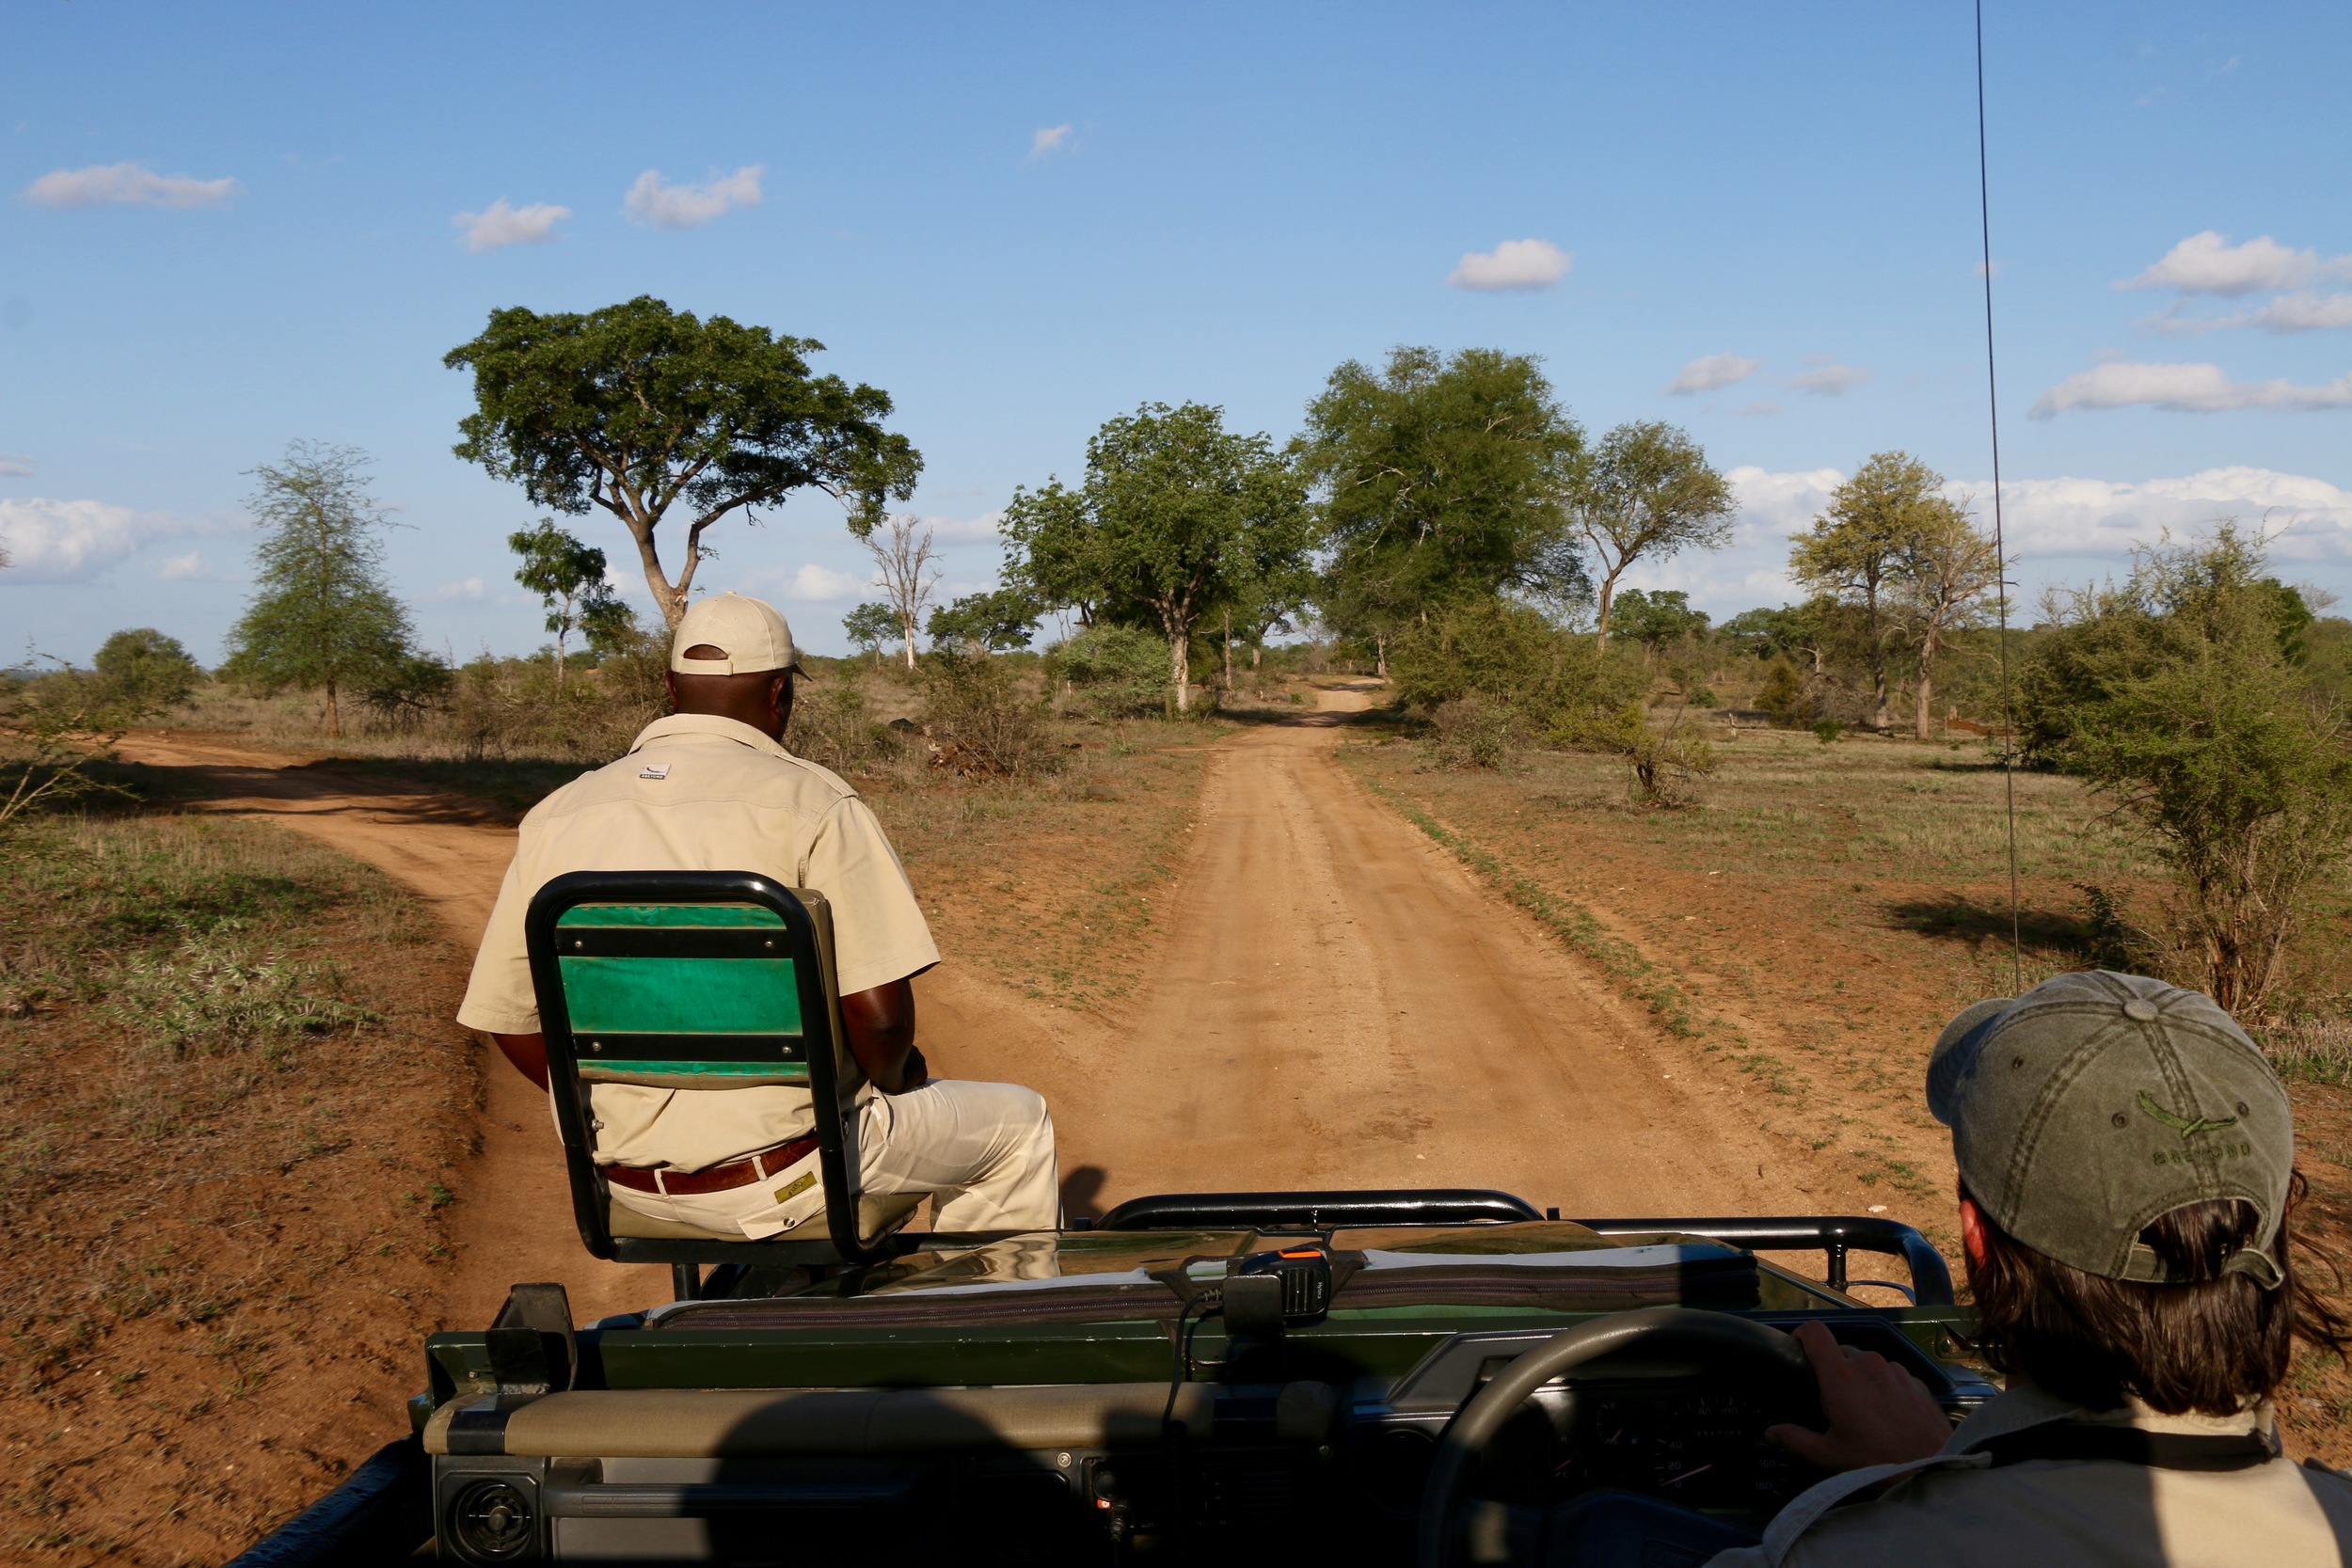 The view of the Land ROver on the game drive.